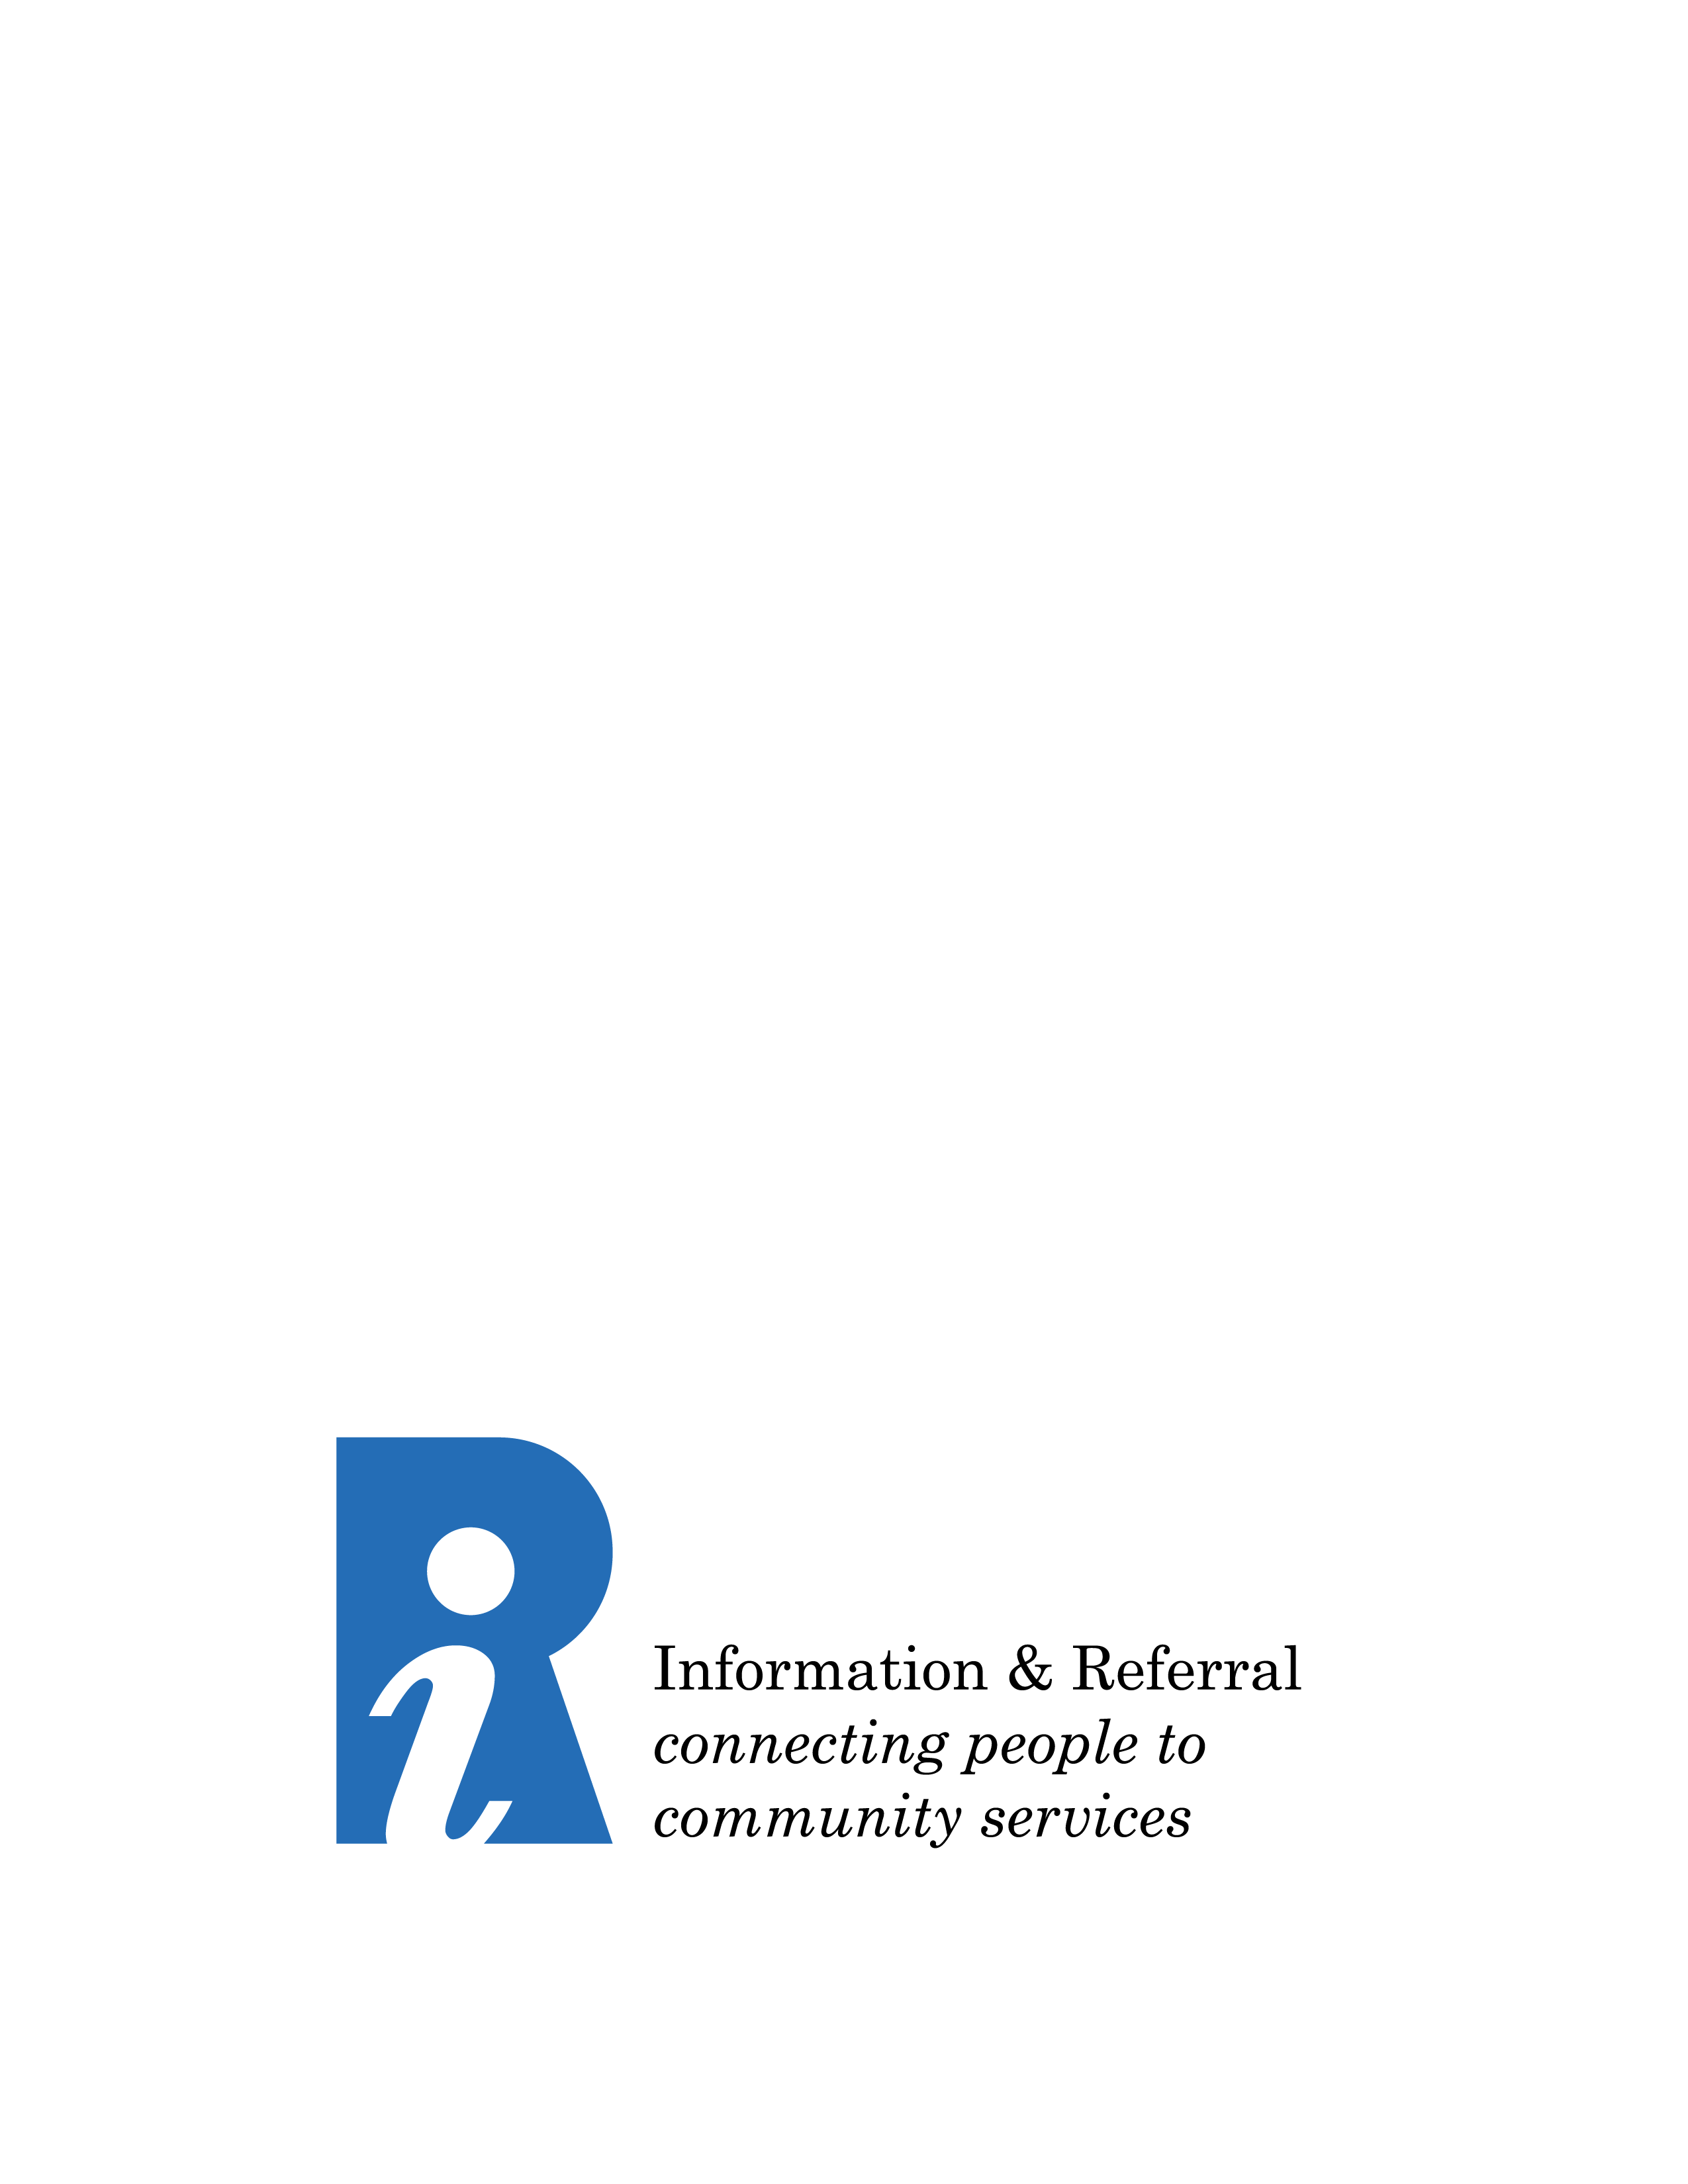 Airs And Ir Logos Alliance Of Information And Referral Systems